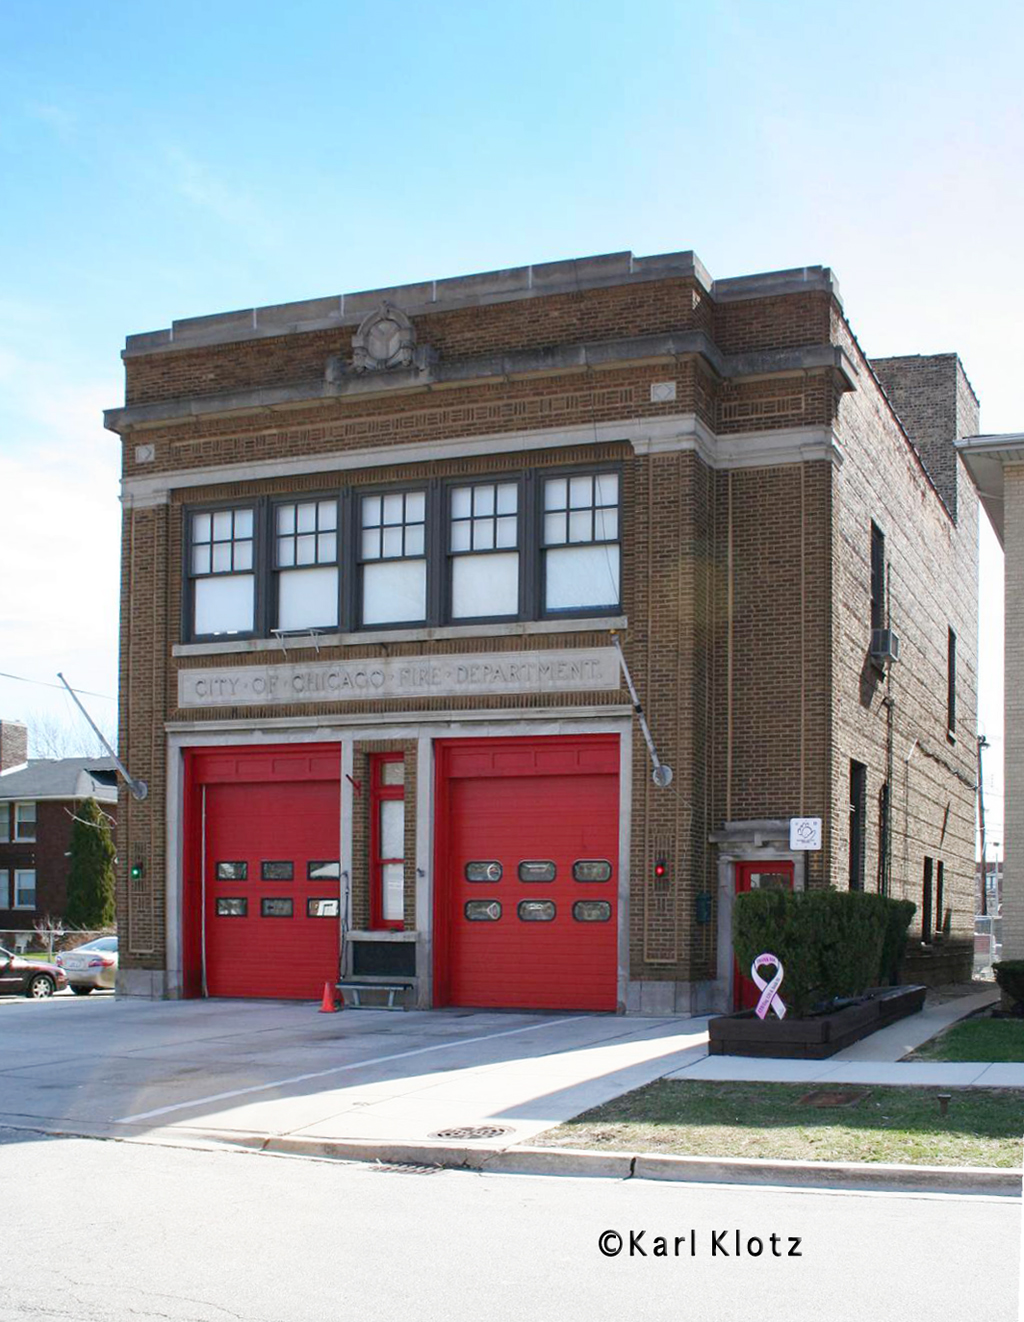 Chicago Fire Department Engine 120's house